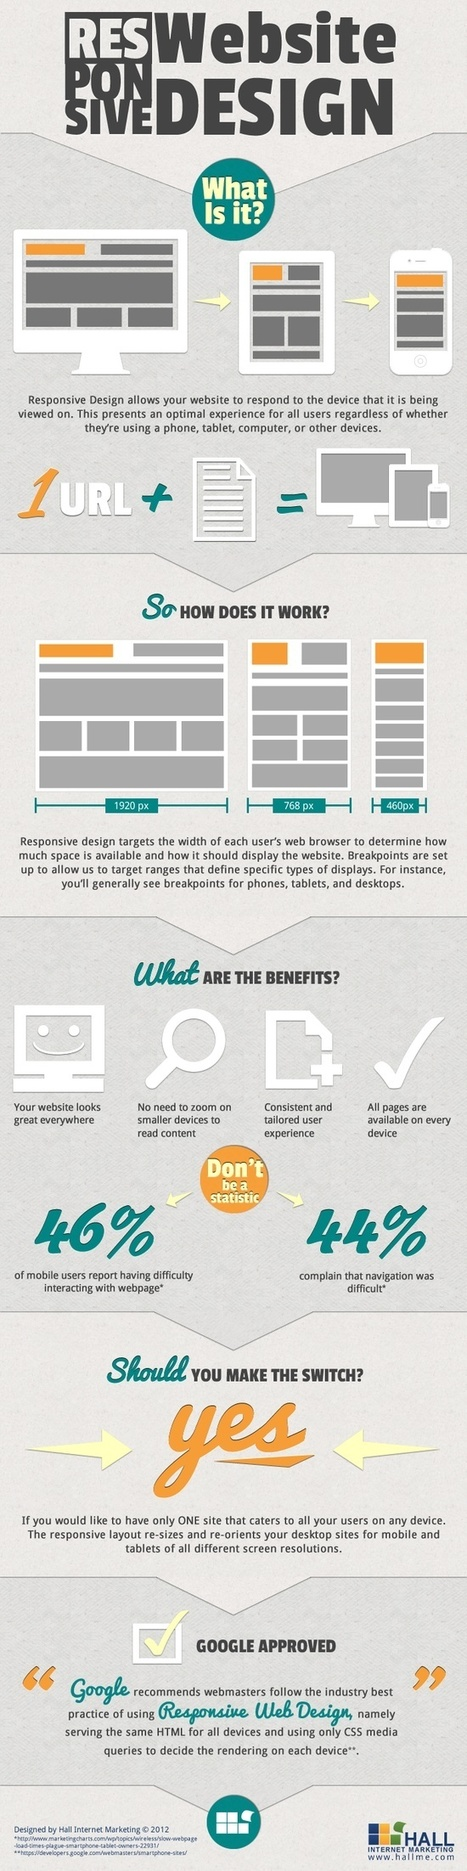 Responsive Website Design, What Is It? [Infographic] | Content Creation, Curation, Management | Scoop.it